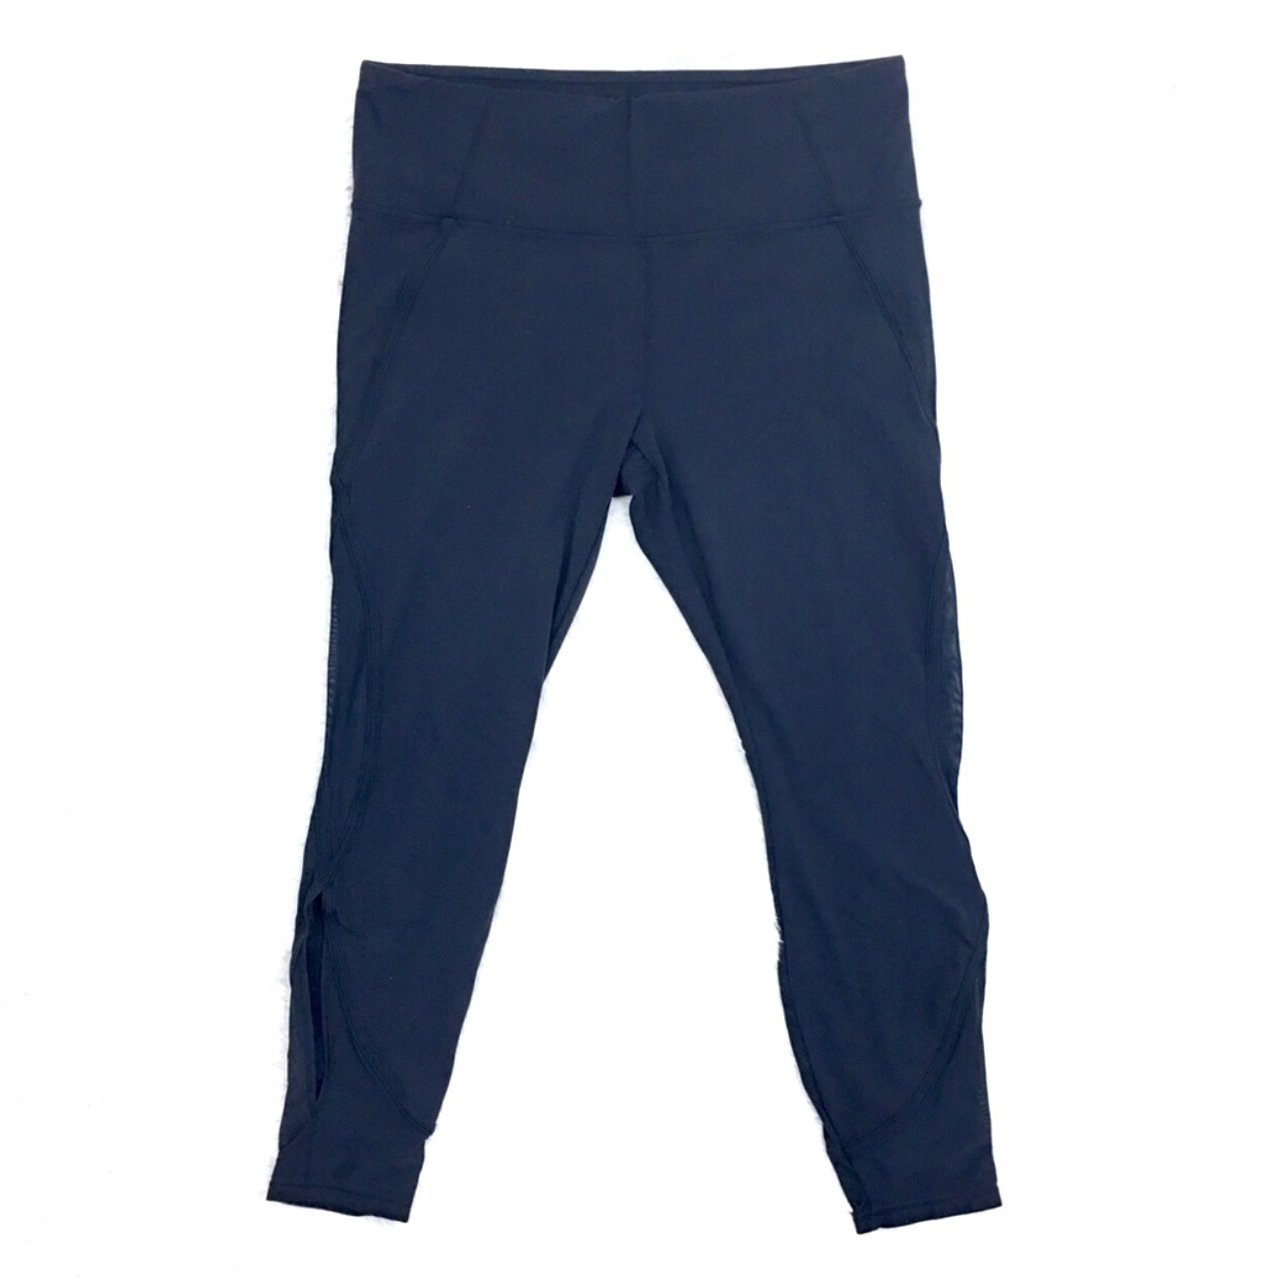 a9006620247346 @girlyoh. 2 months ago. United States. Athleta Navy Blue Mesh Salutation 7/8  Ankle Tights. Women's ...